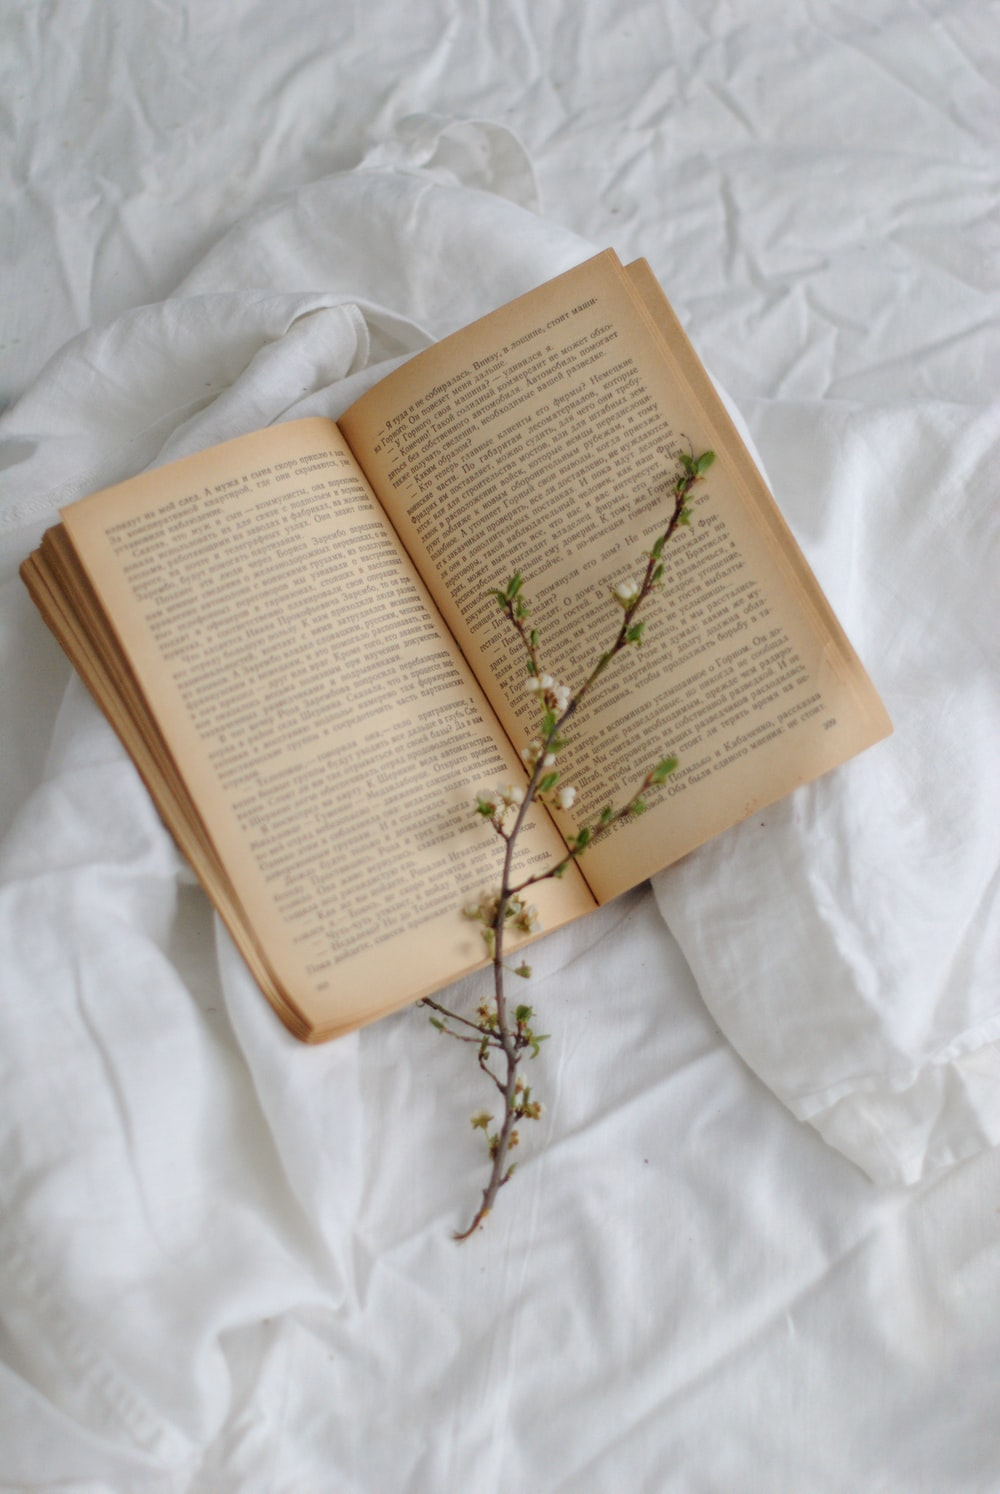 green plant on book page